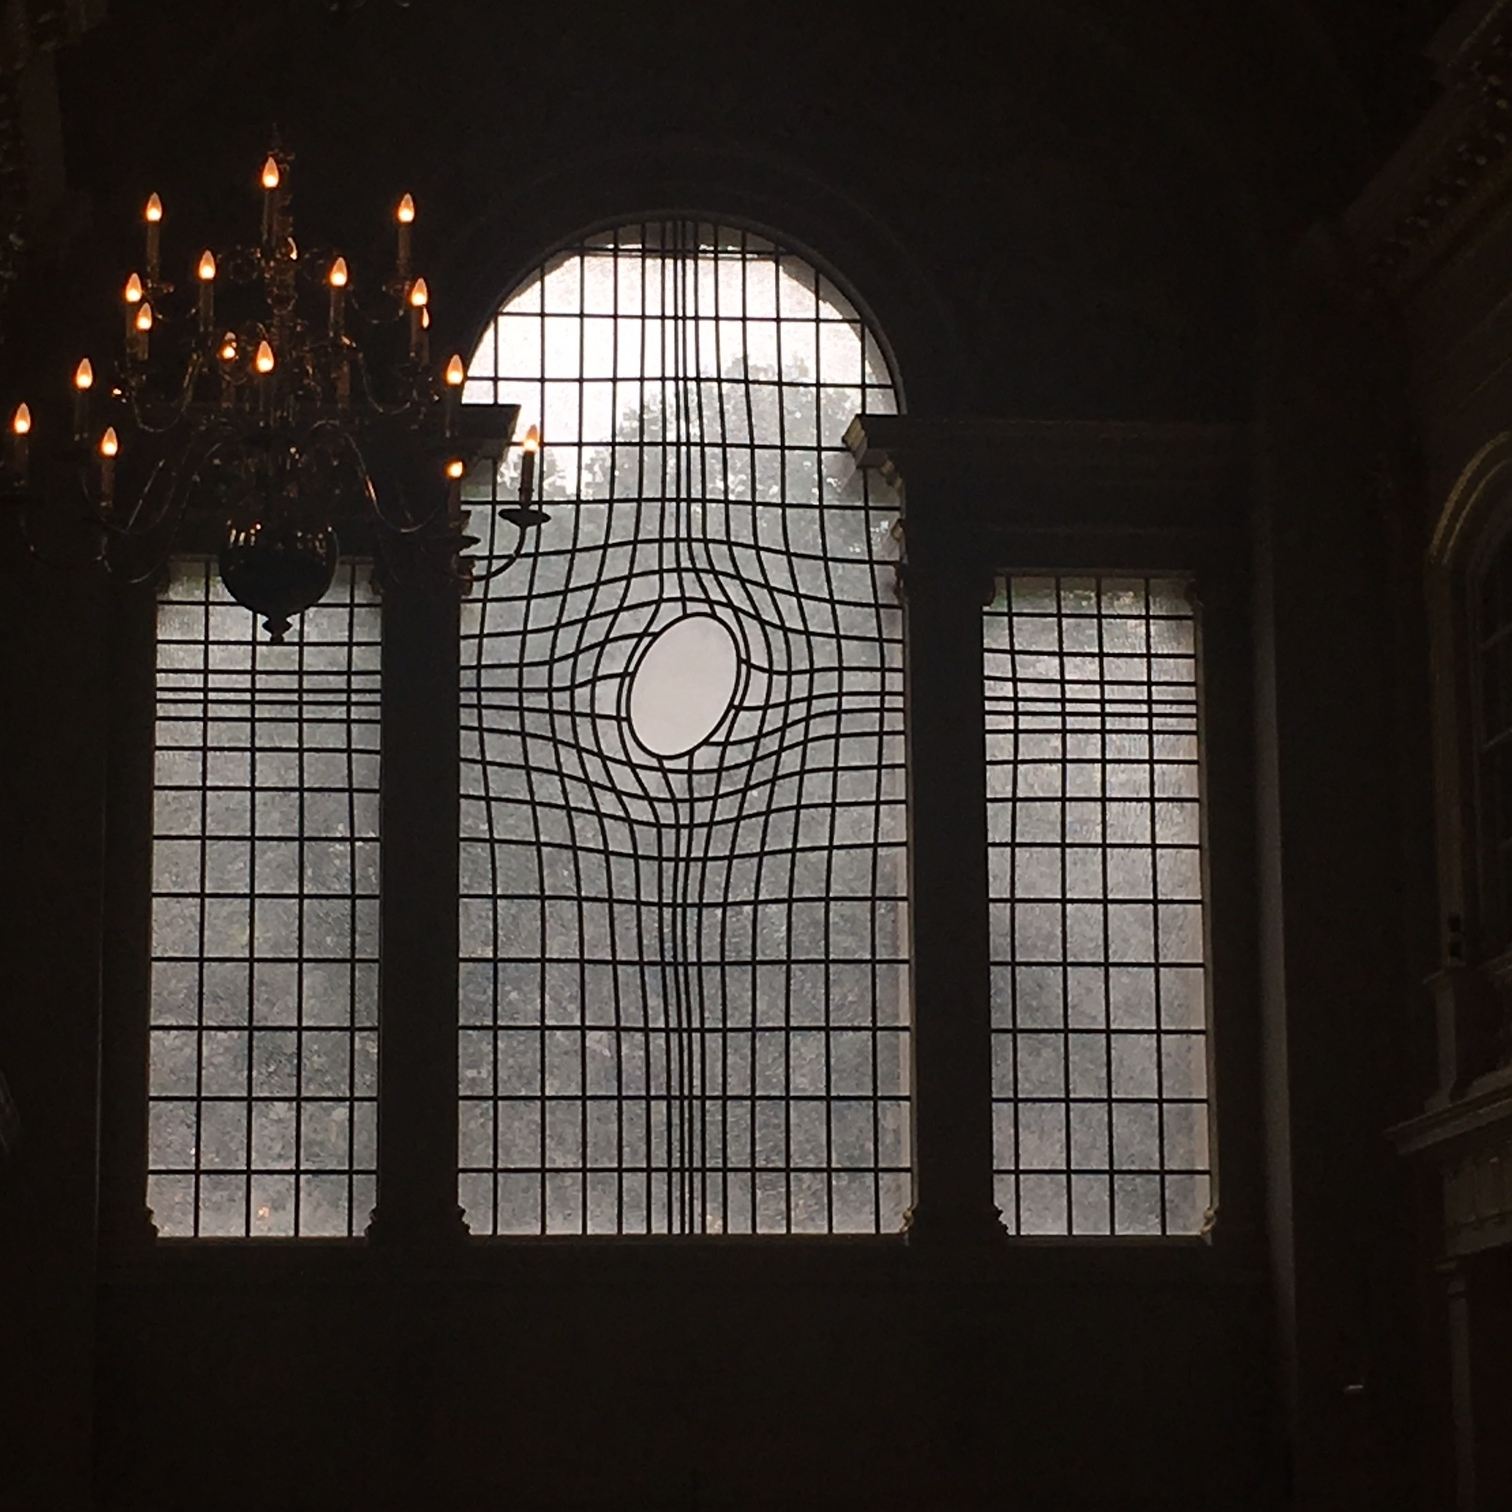 St Martins in the Field, London by The Doubtful Traveller